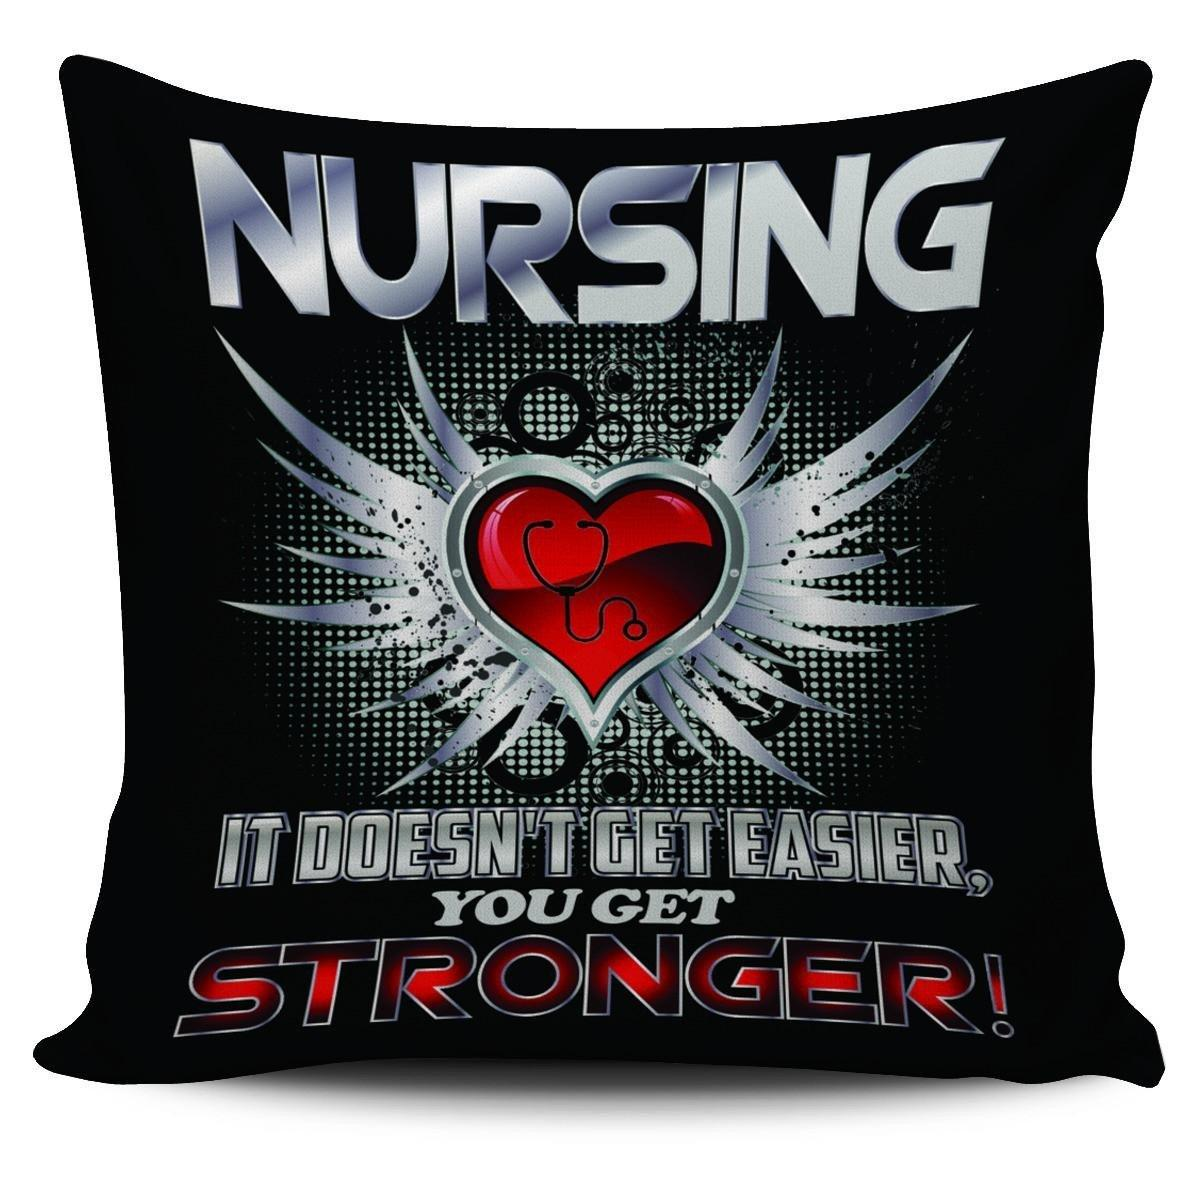 Nursing Pillowcase